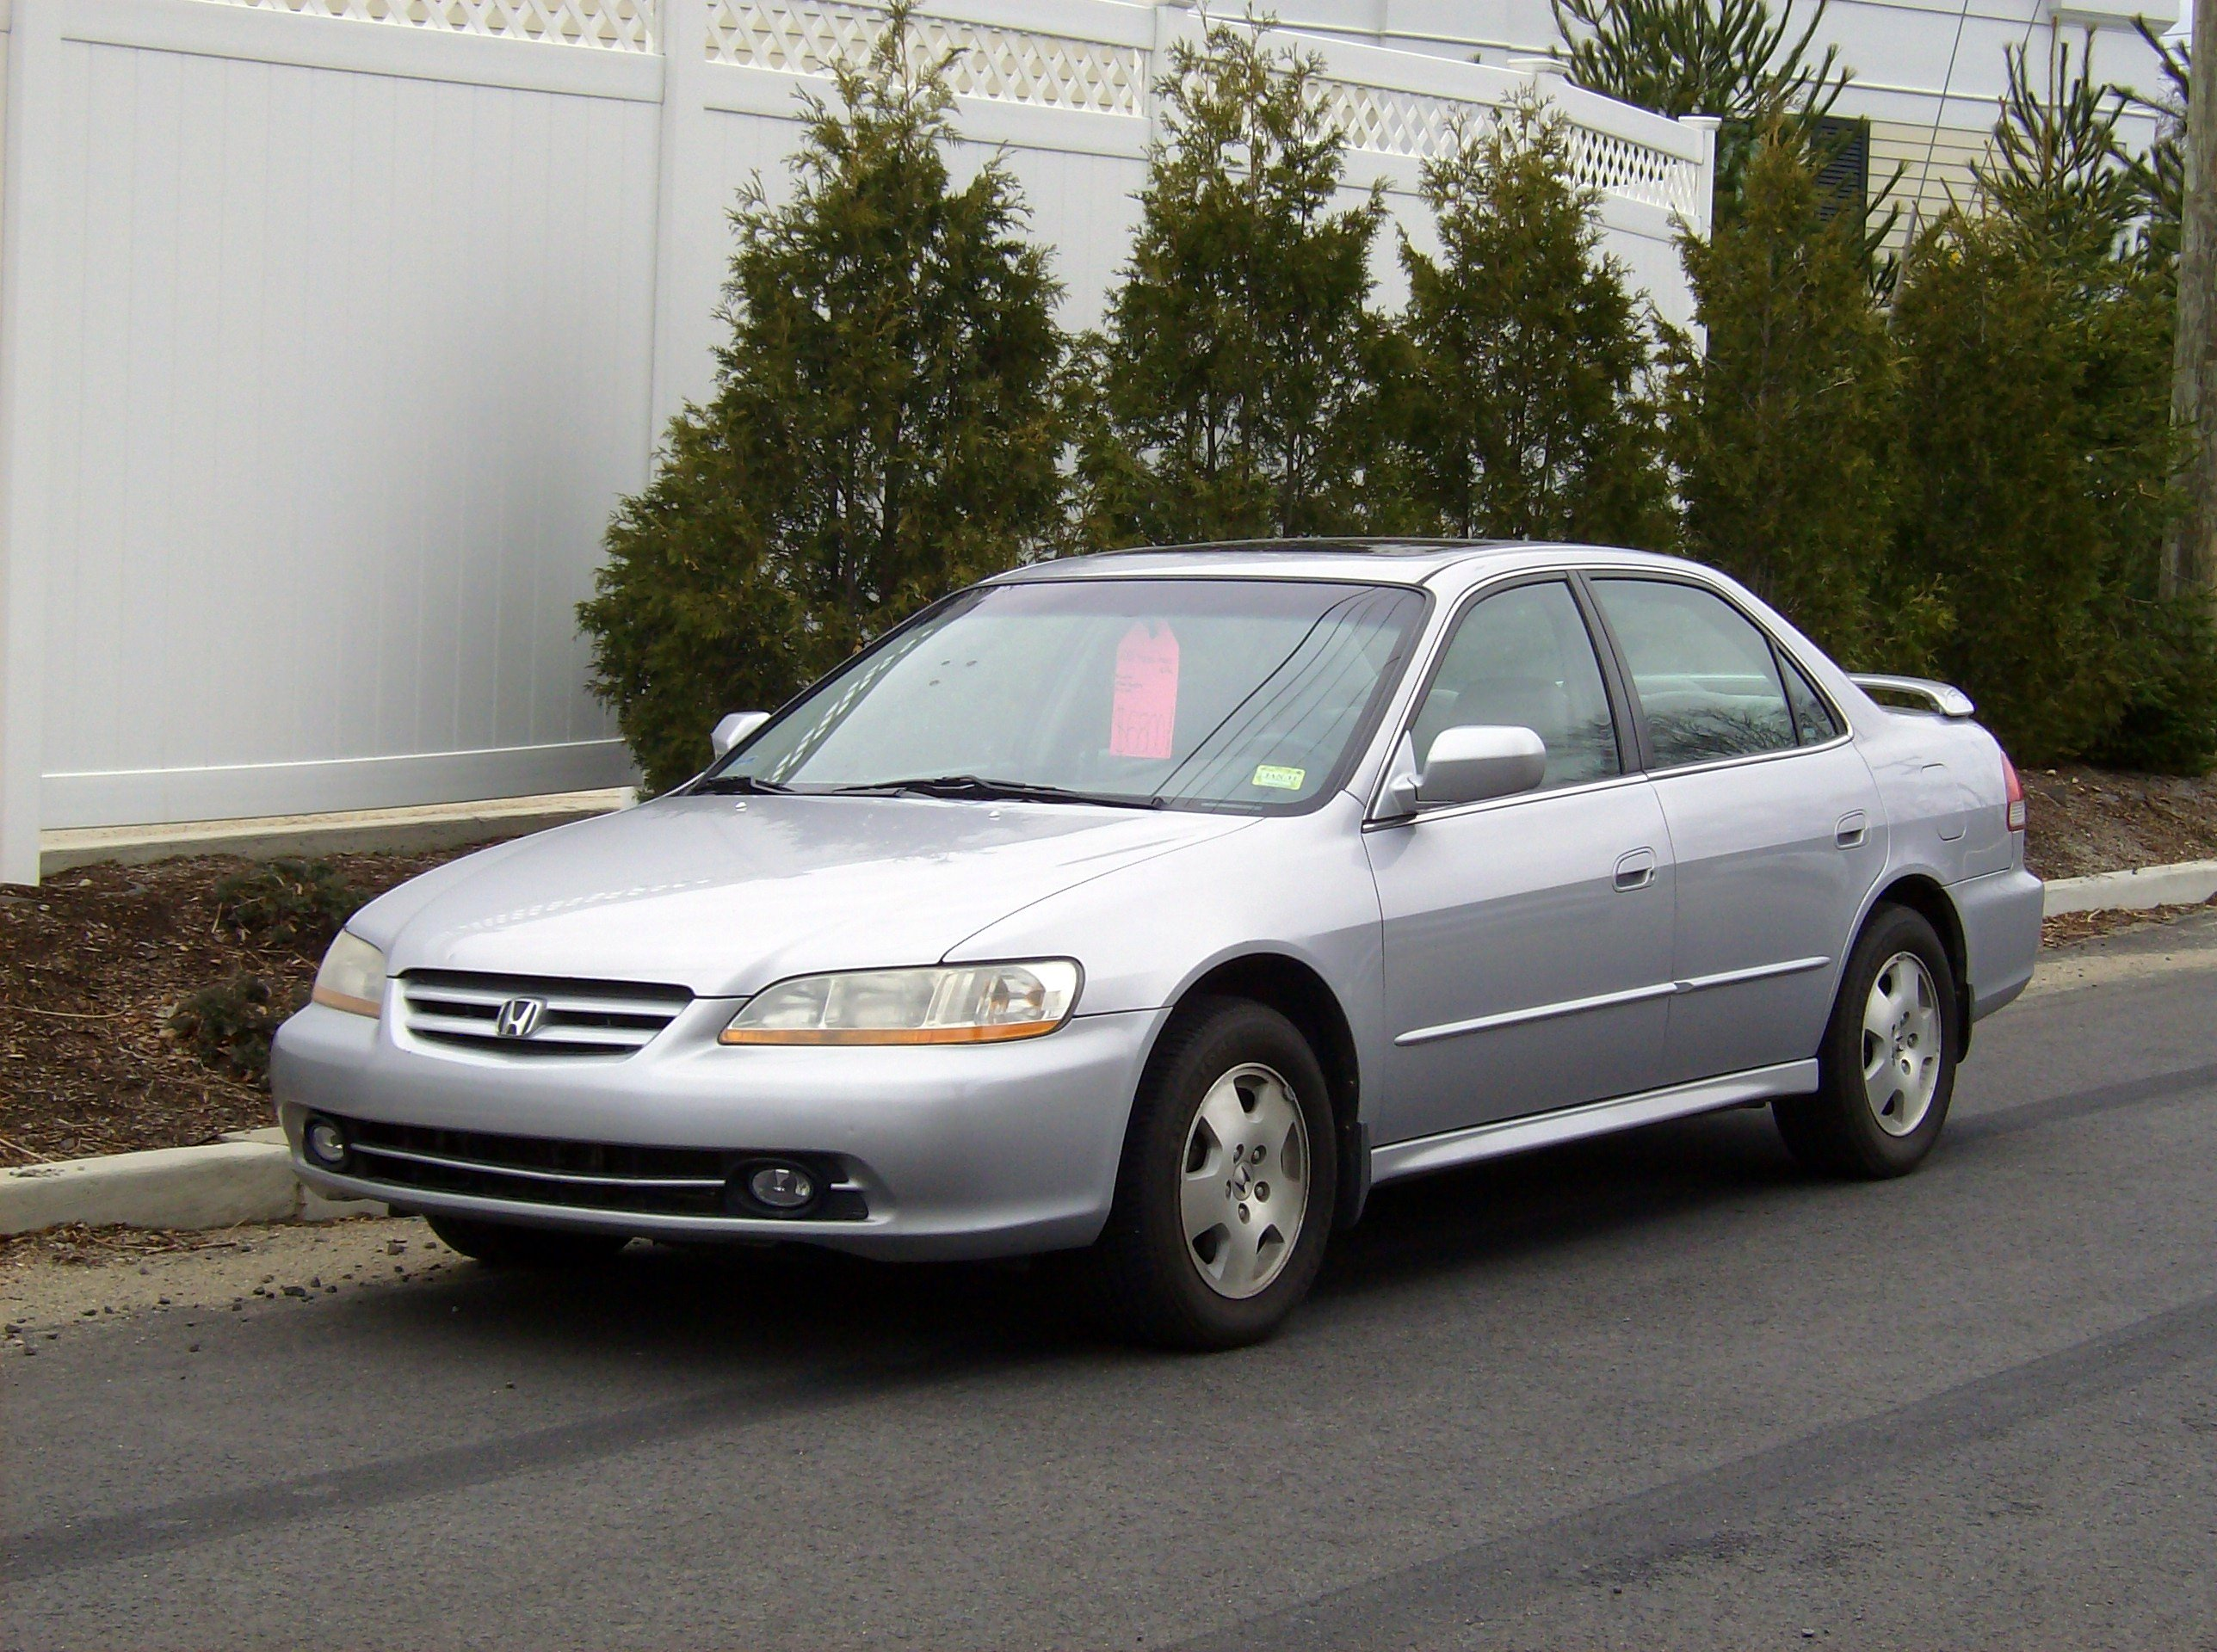 2001 Honda Accord #2